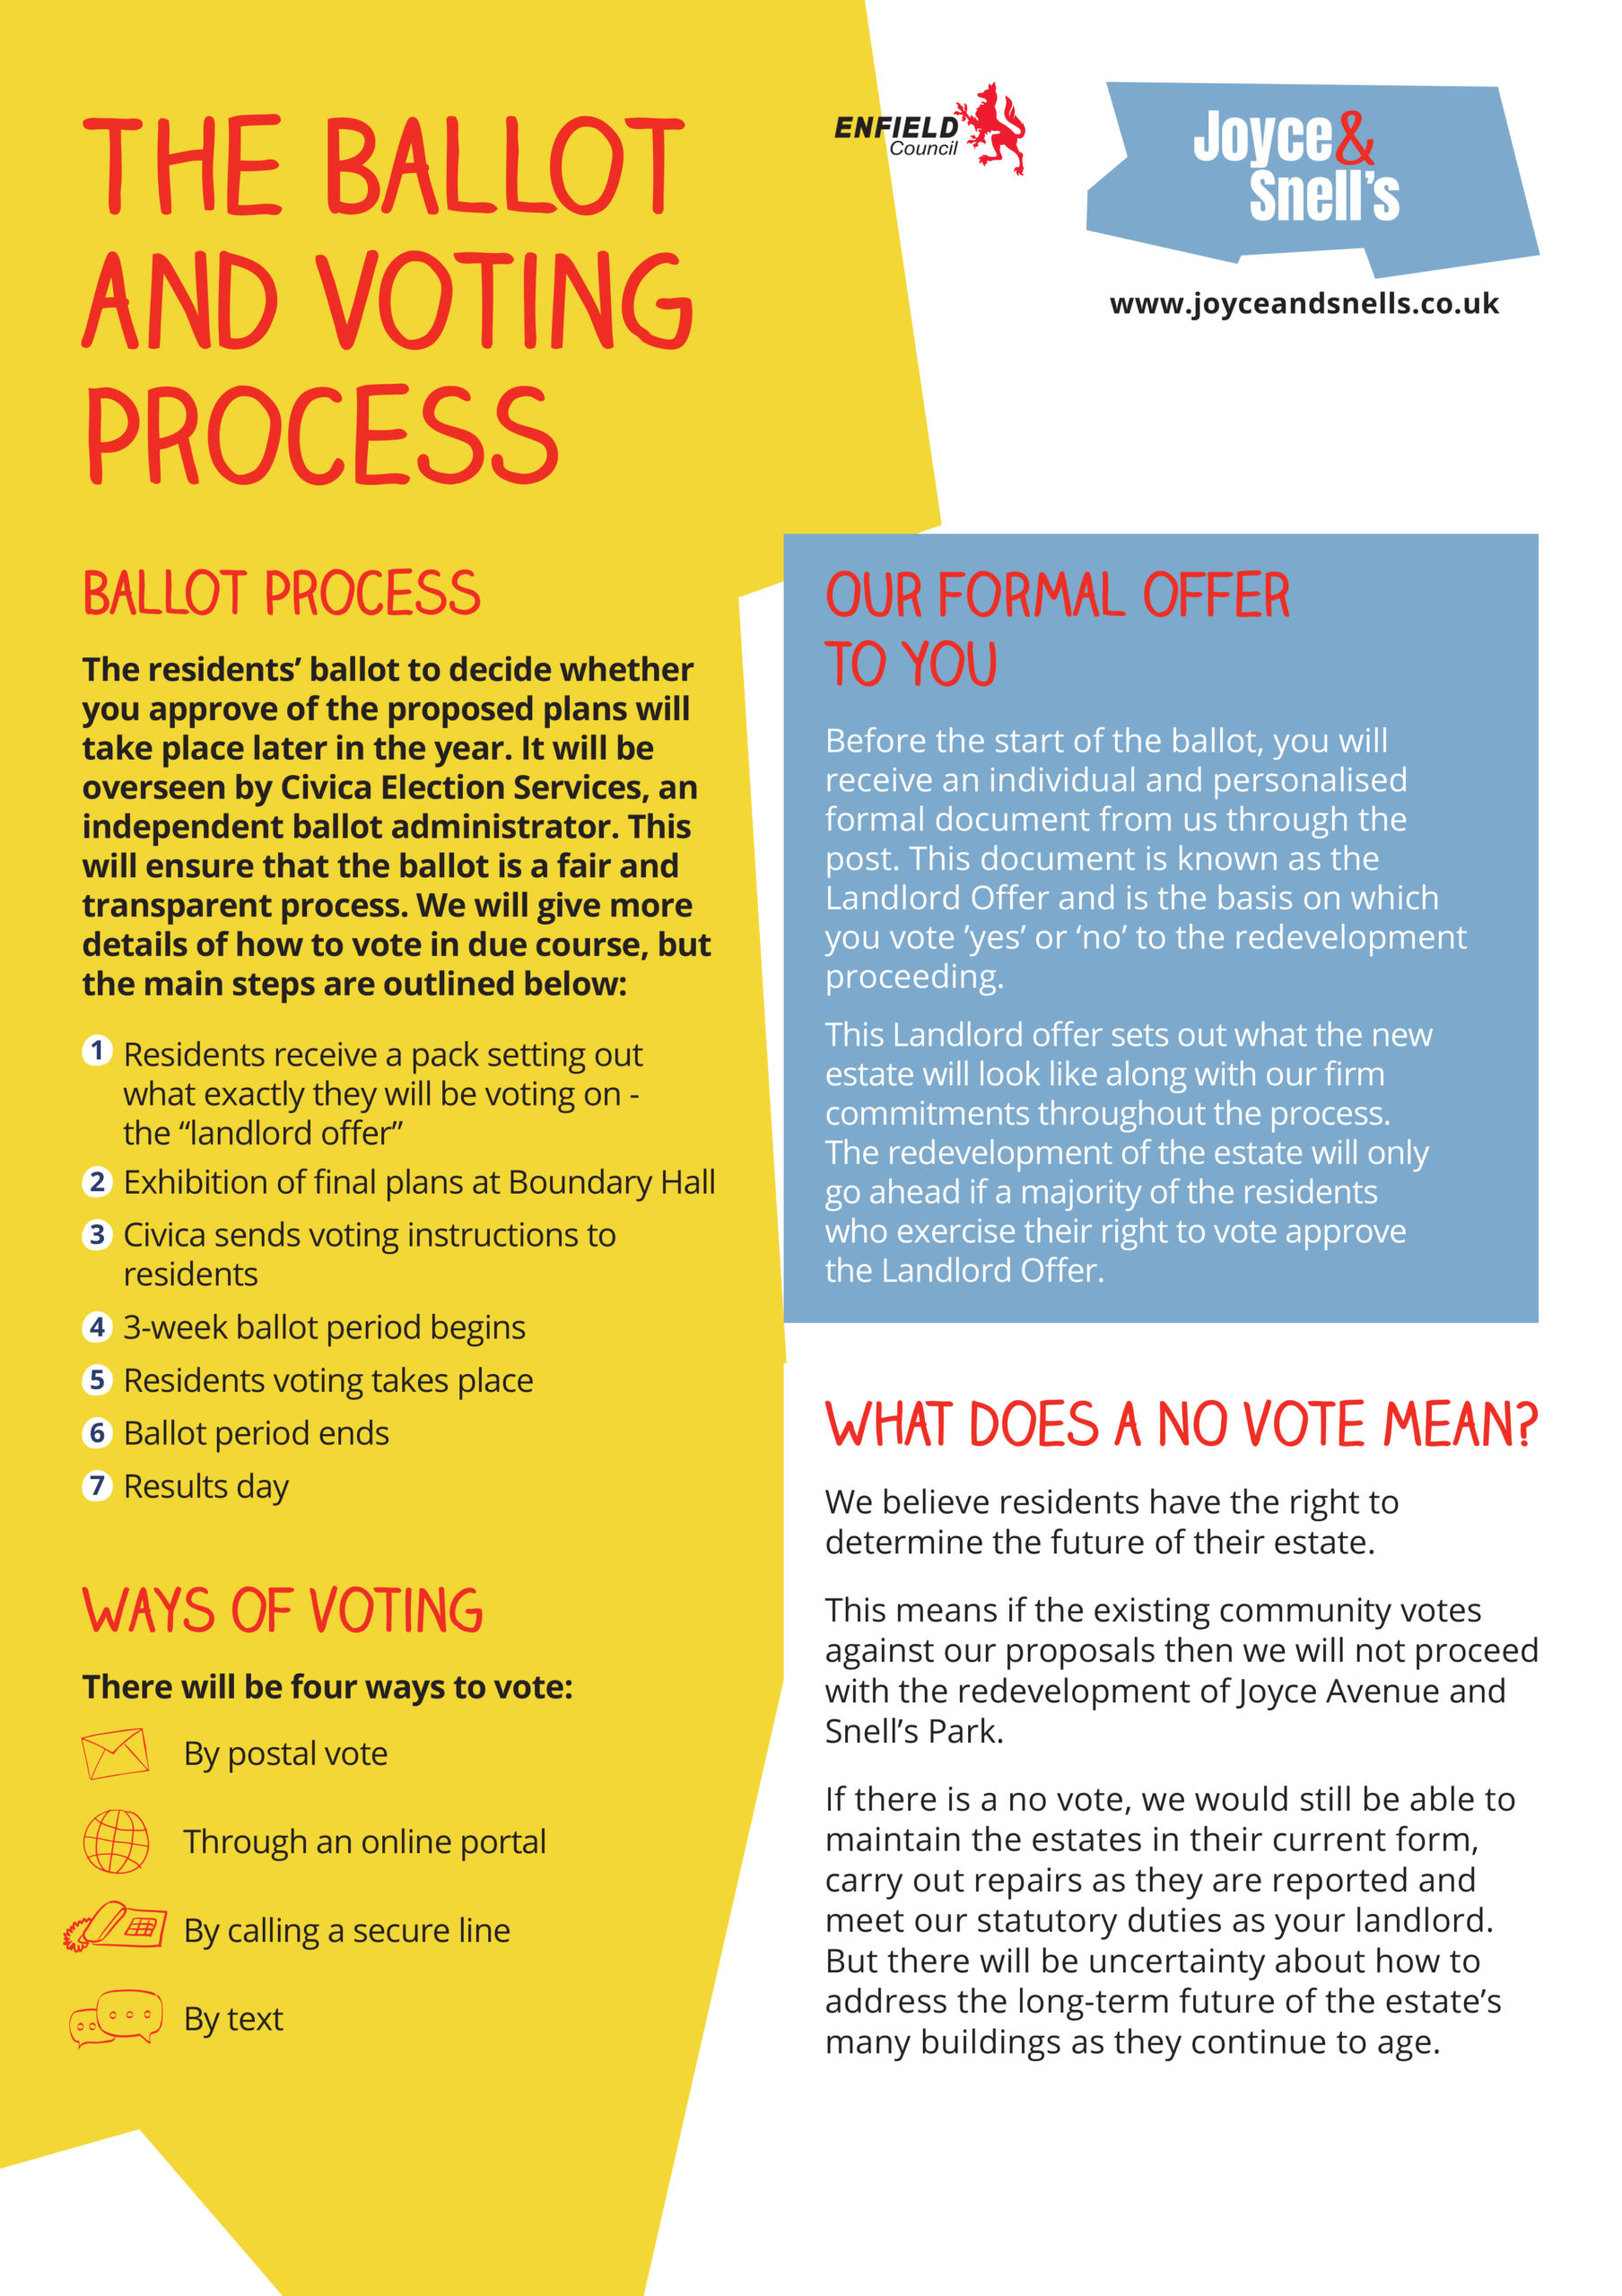 Joyce & Snells Exhibition Board 9 - The Ballot and voting process